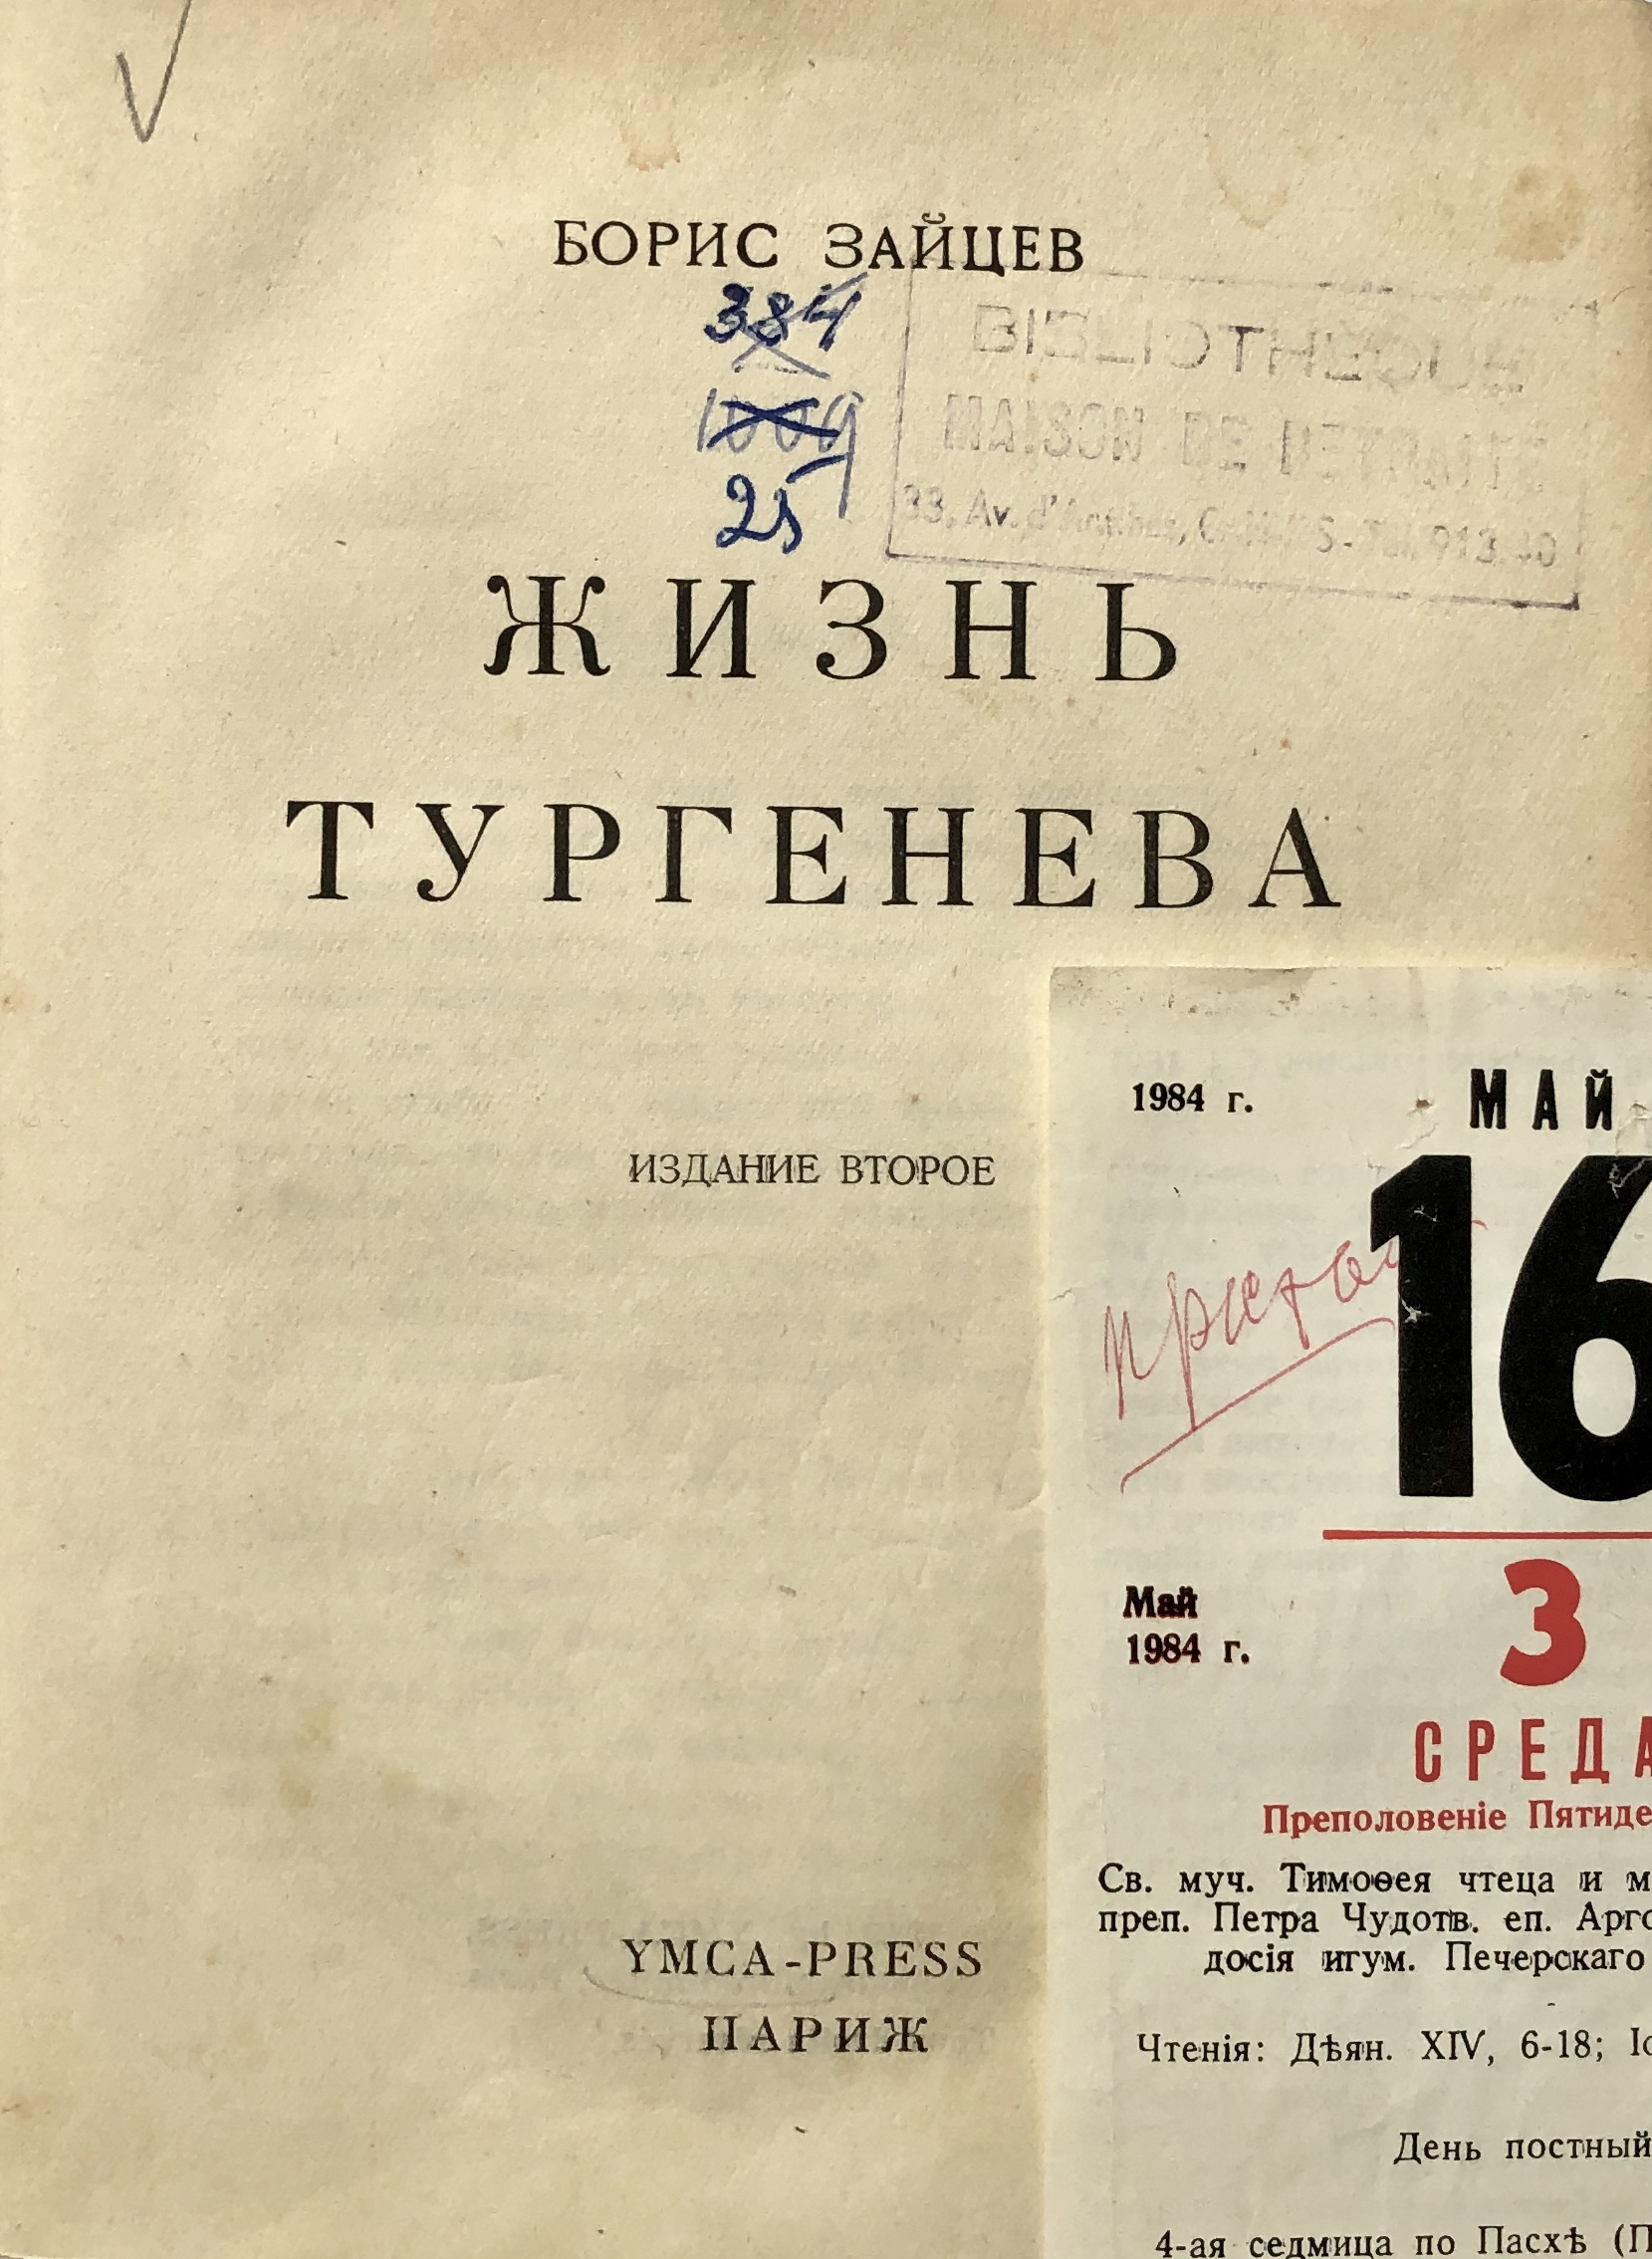 Lot 419 - ZAÏTSEV, Boris. La vie de Tourguéniev. Paris, YMCA press, 1949. ЗАЙЦЕВ, [...]